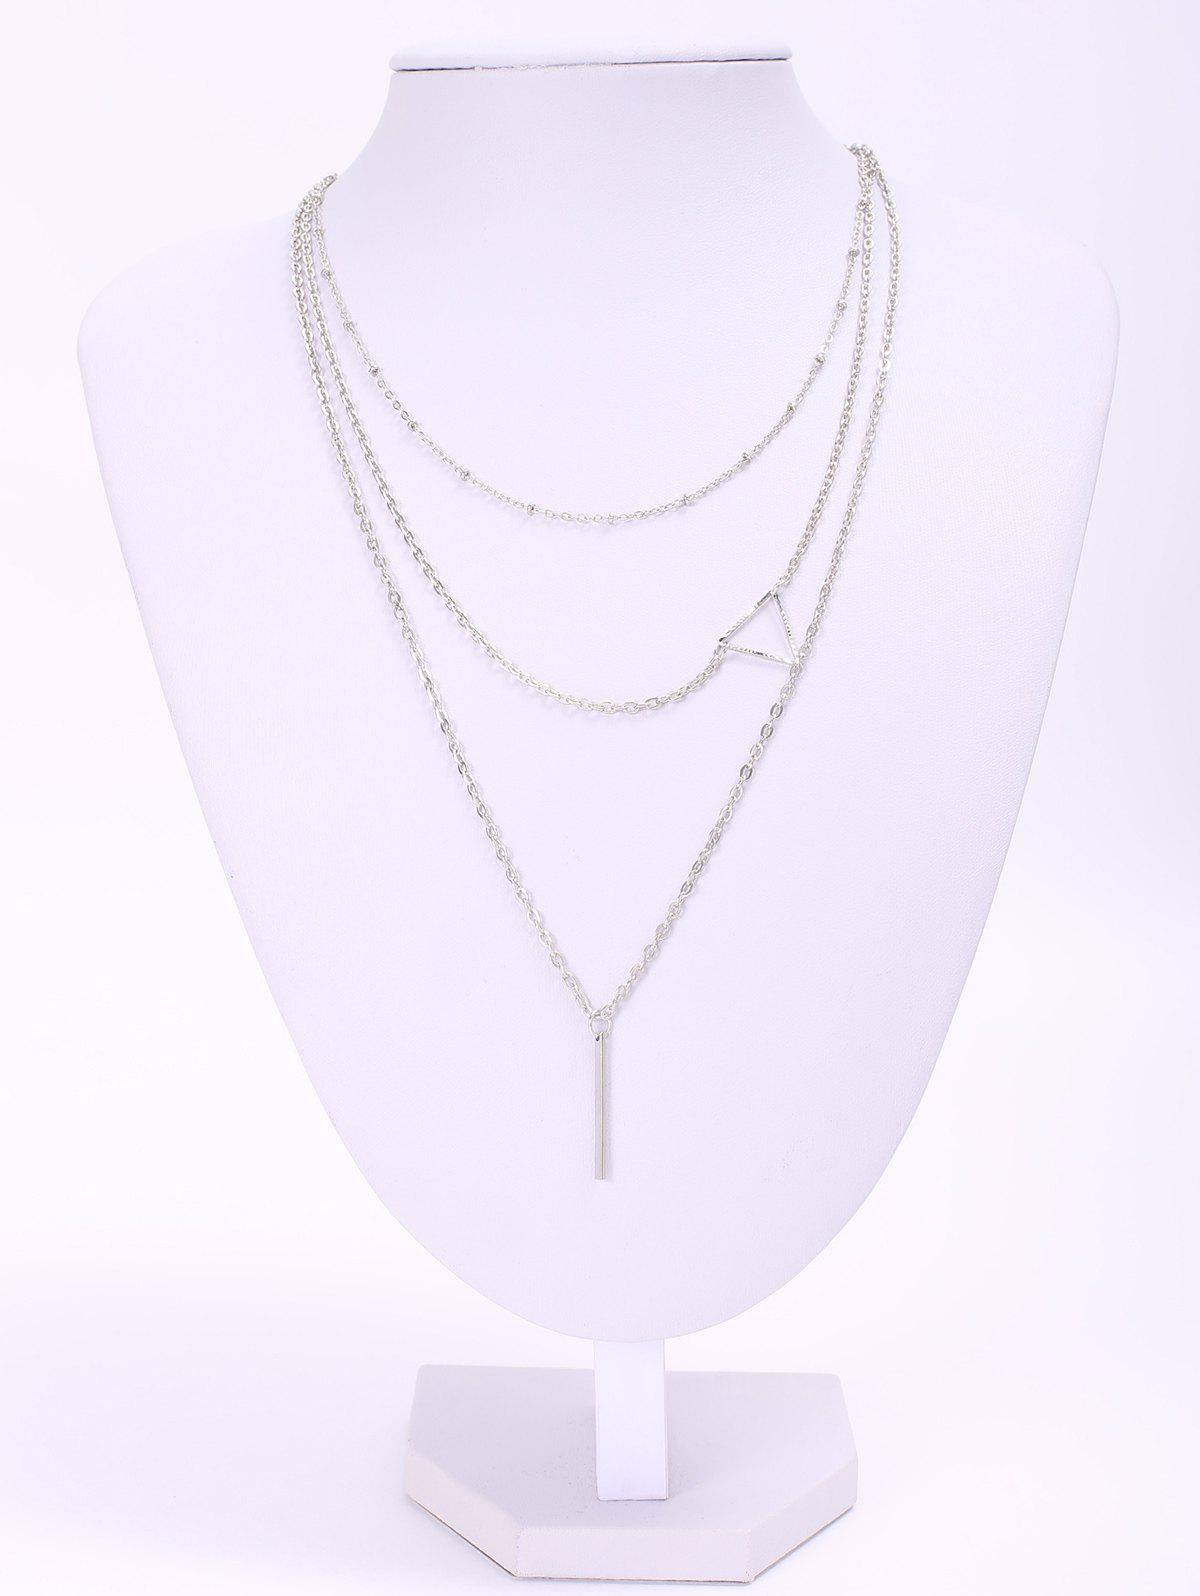 Stylish Chic Women's Openwork Triangle Design Necklace - SILVER